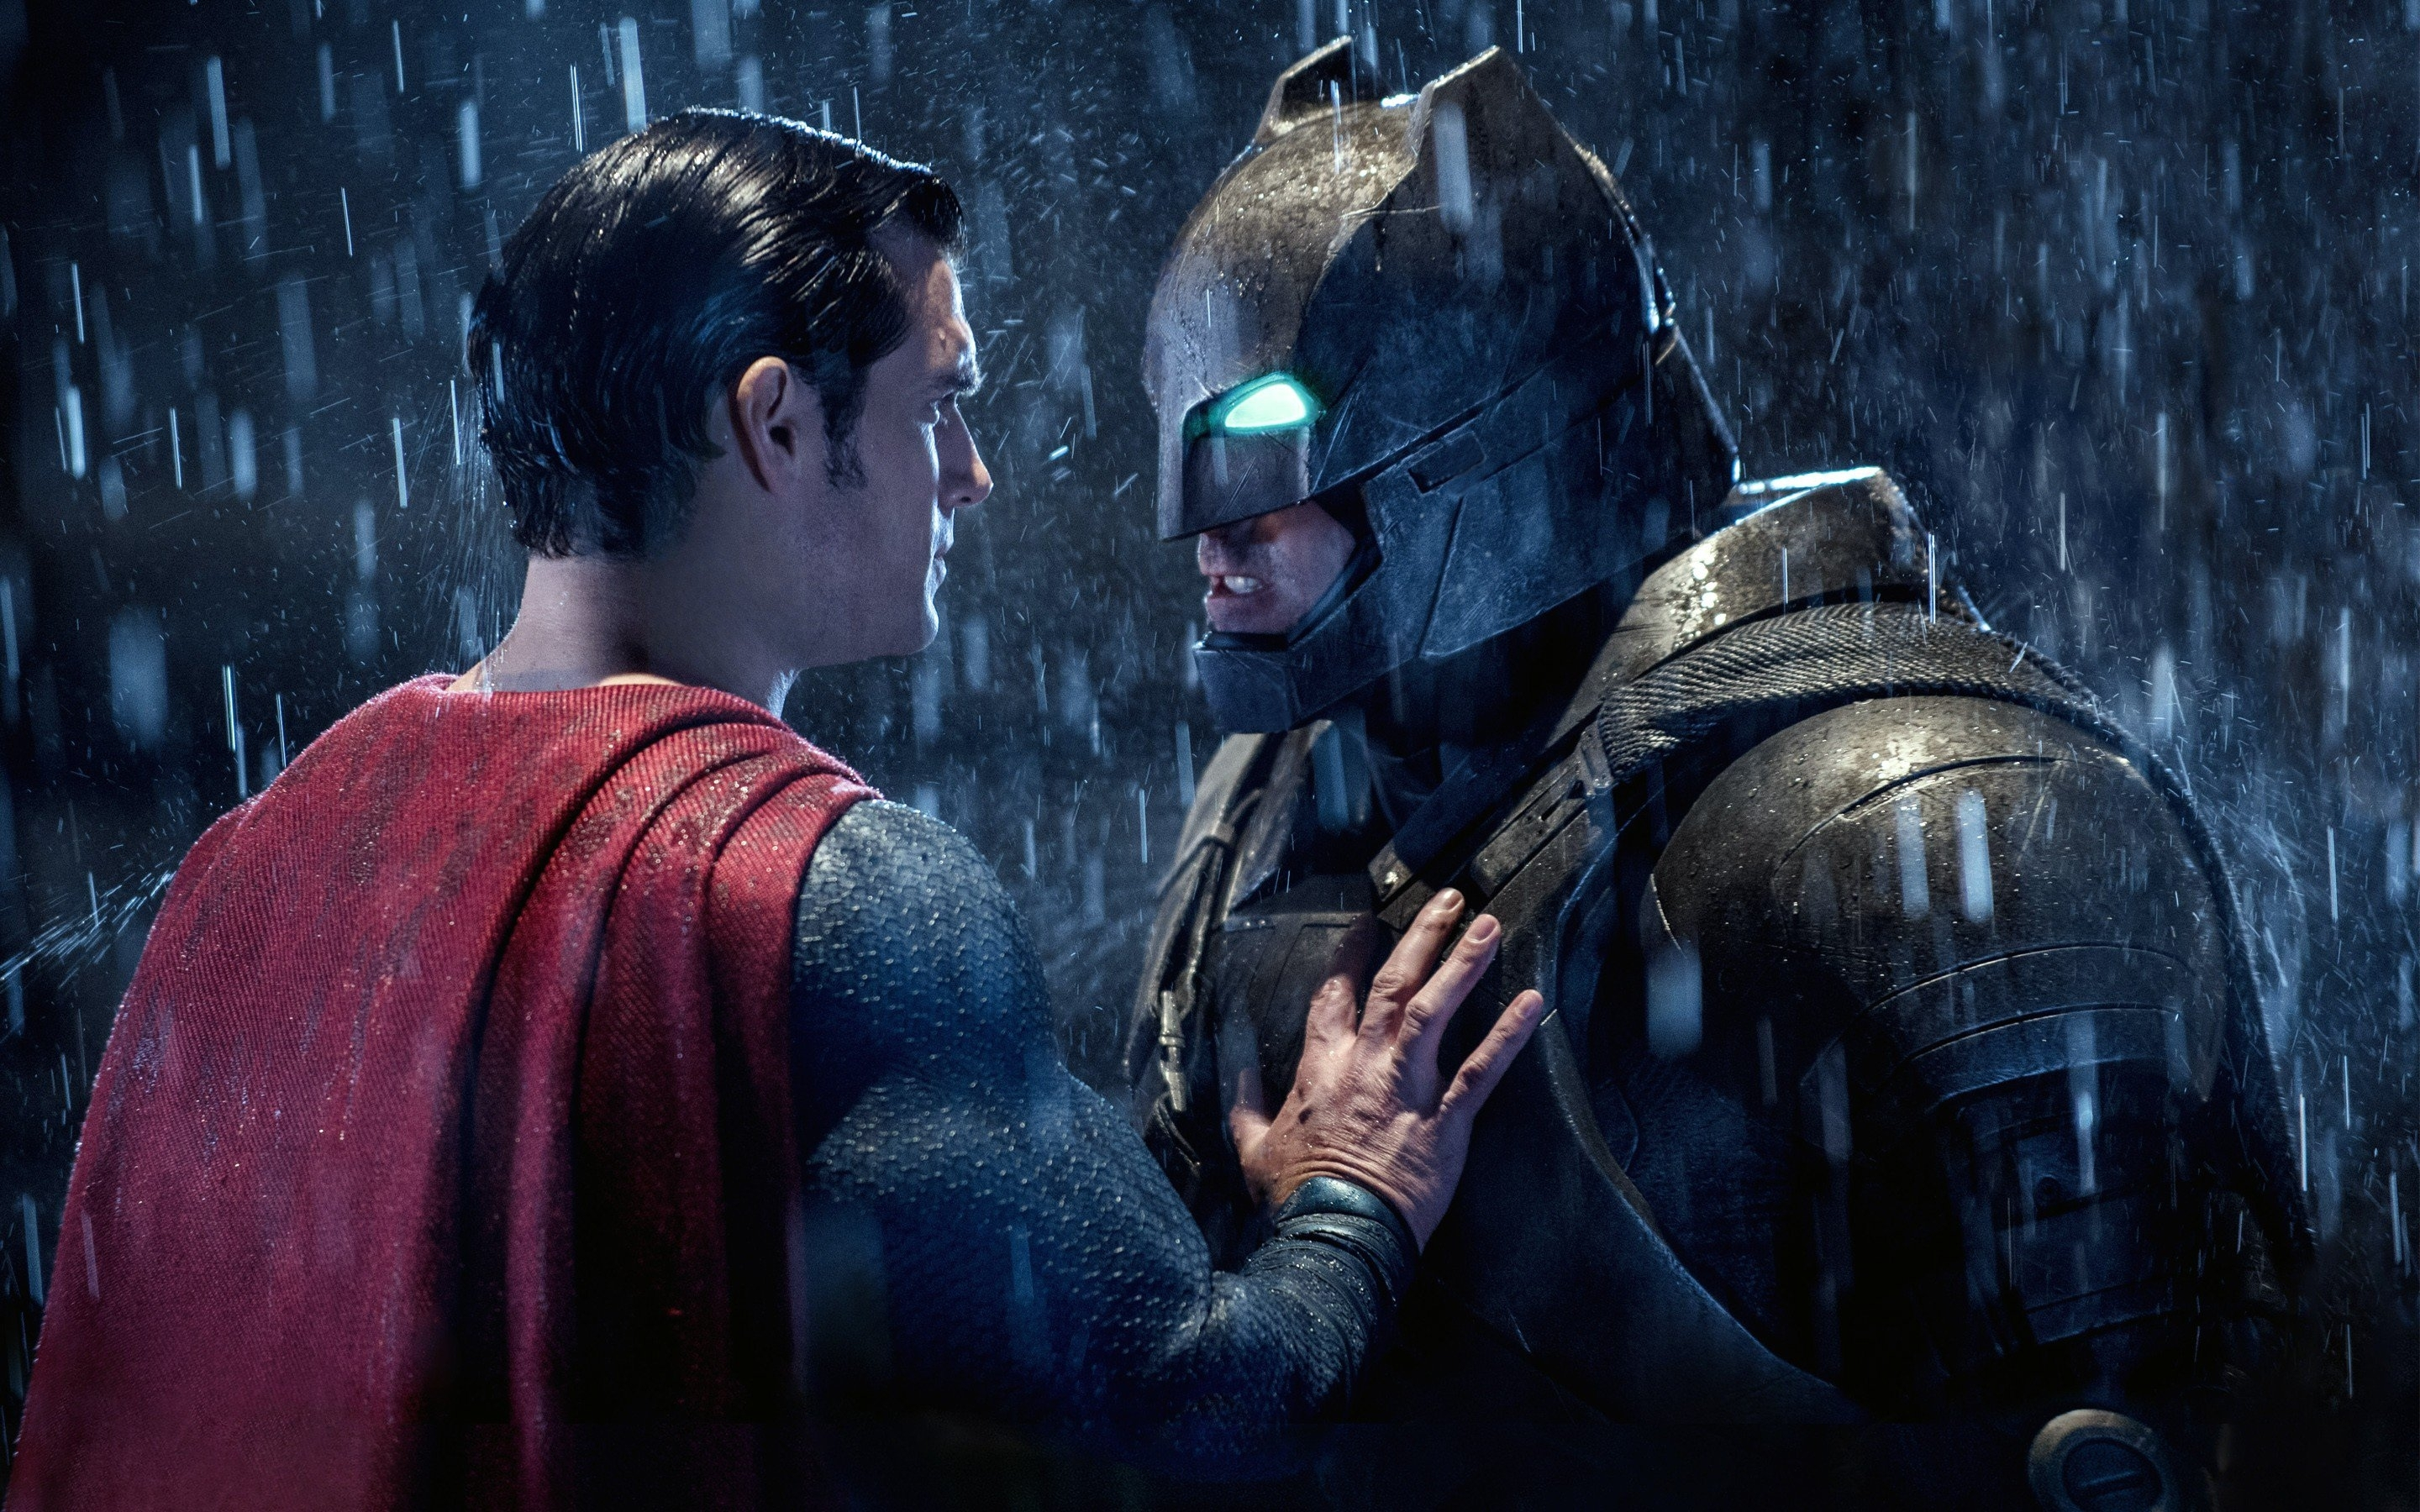 batman v superman, hd movies, 4k wallpapers, images, backgrounds